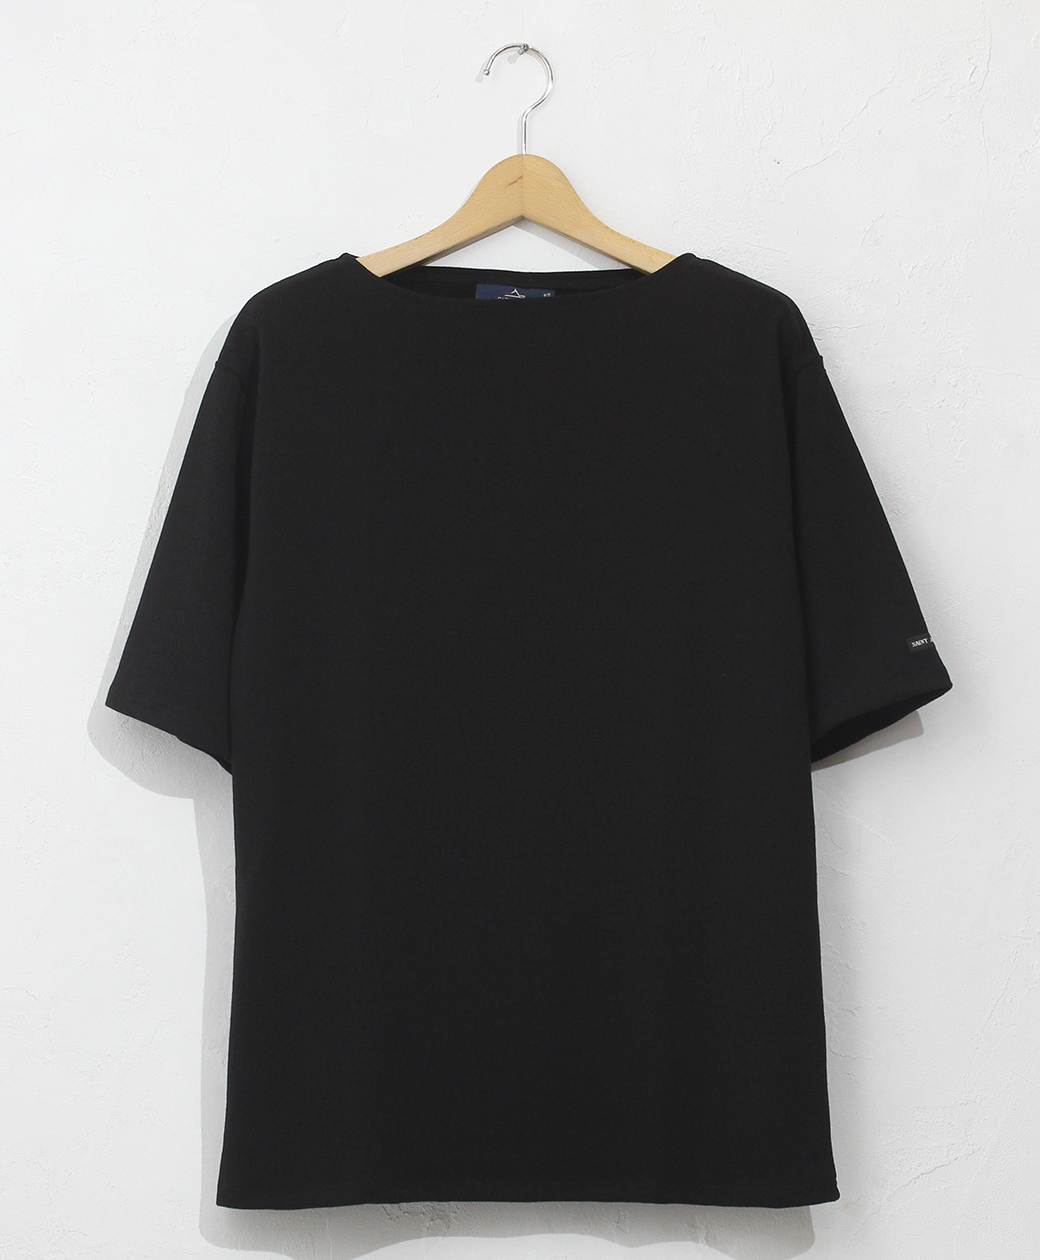 SAINT JAMES OUESSANT LIGHT SHORT SLEEVE(NOIR)